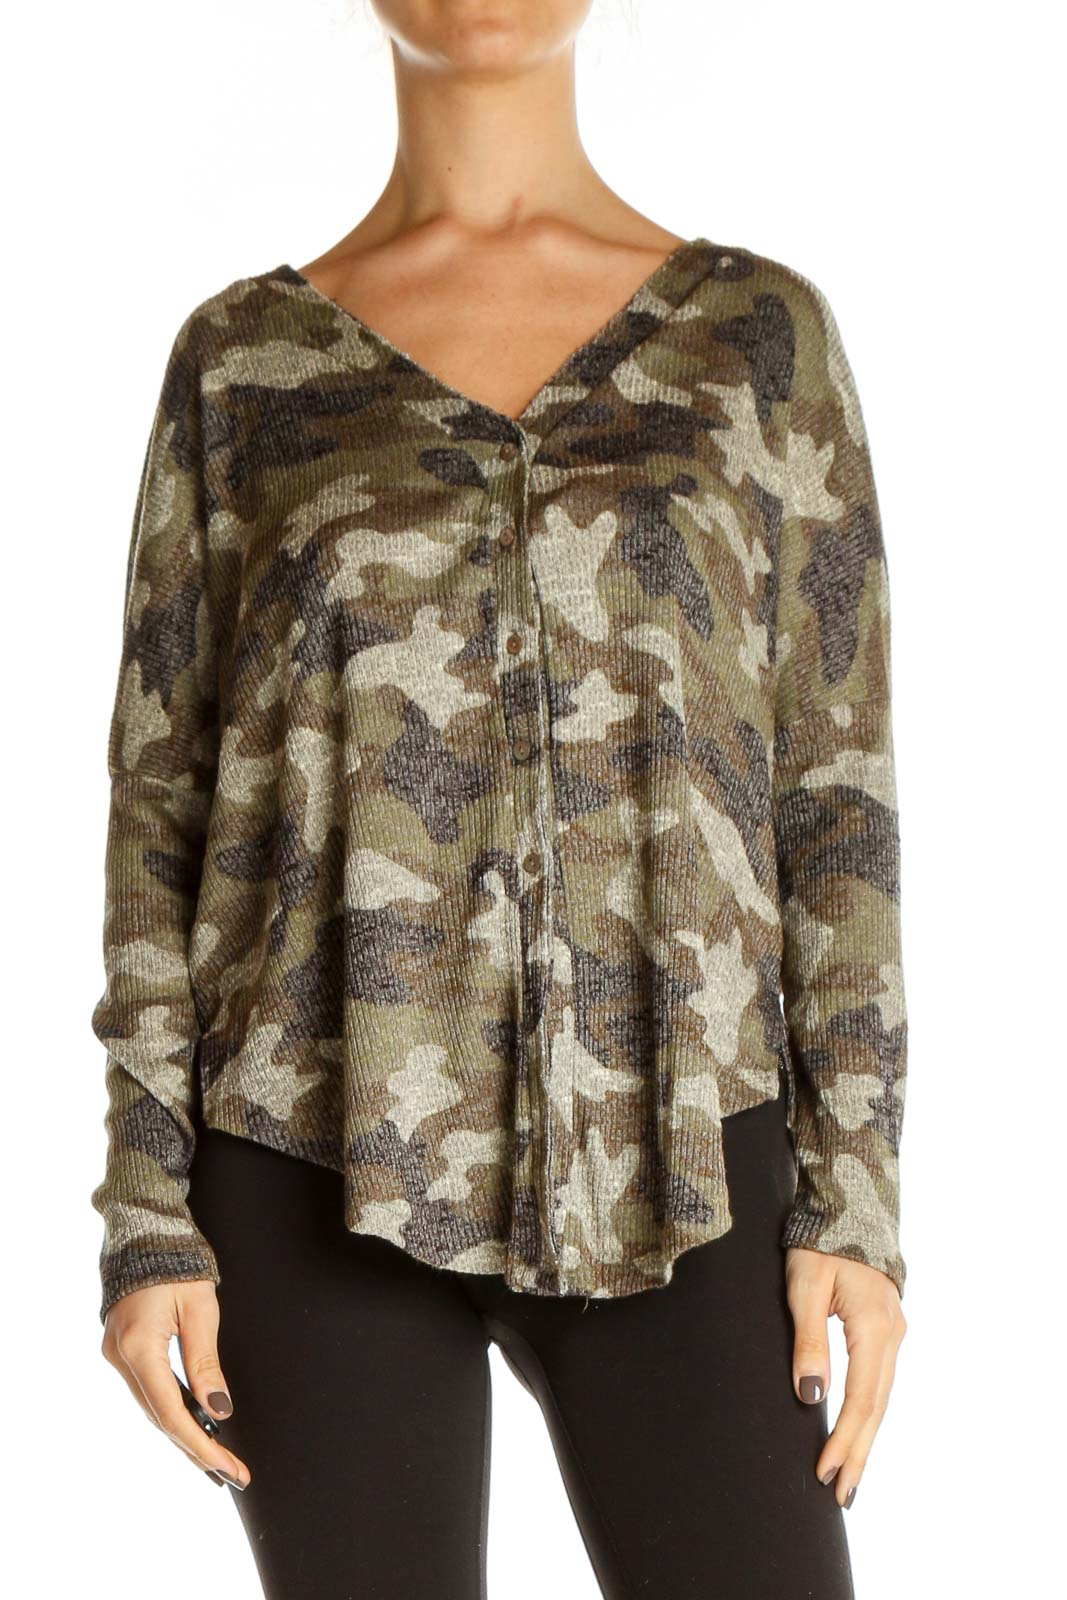 Brown Camouflage Print All Day Wear Blouse Front